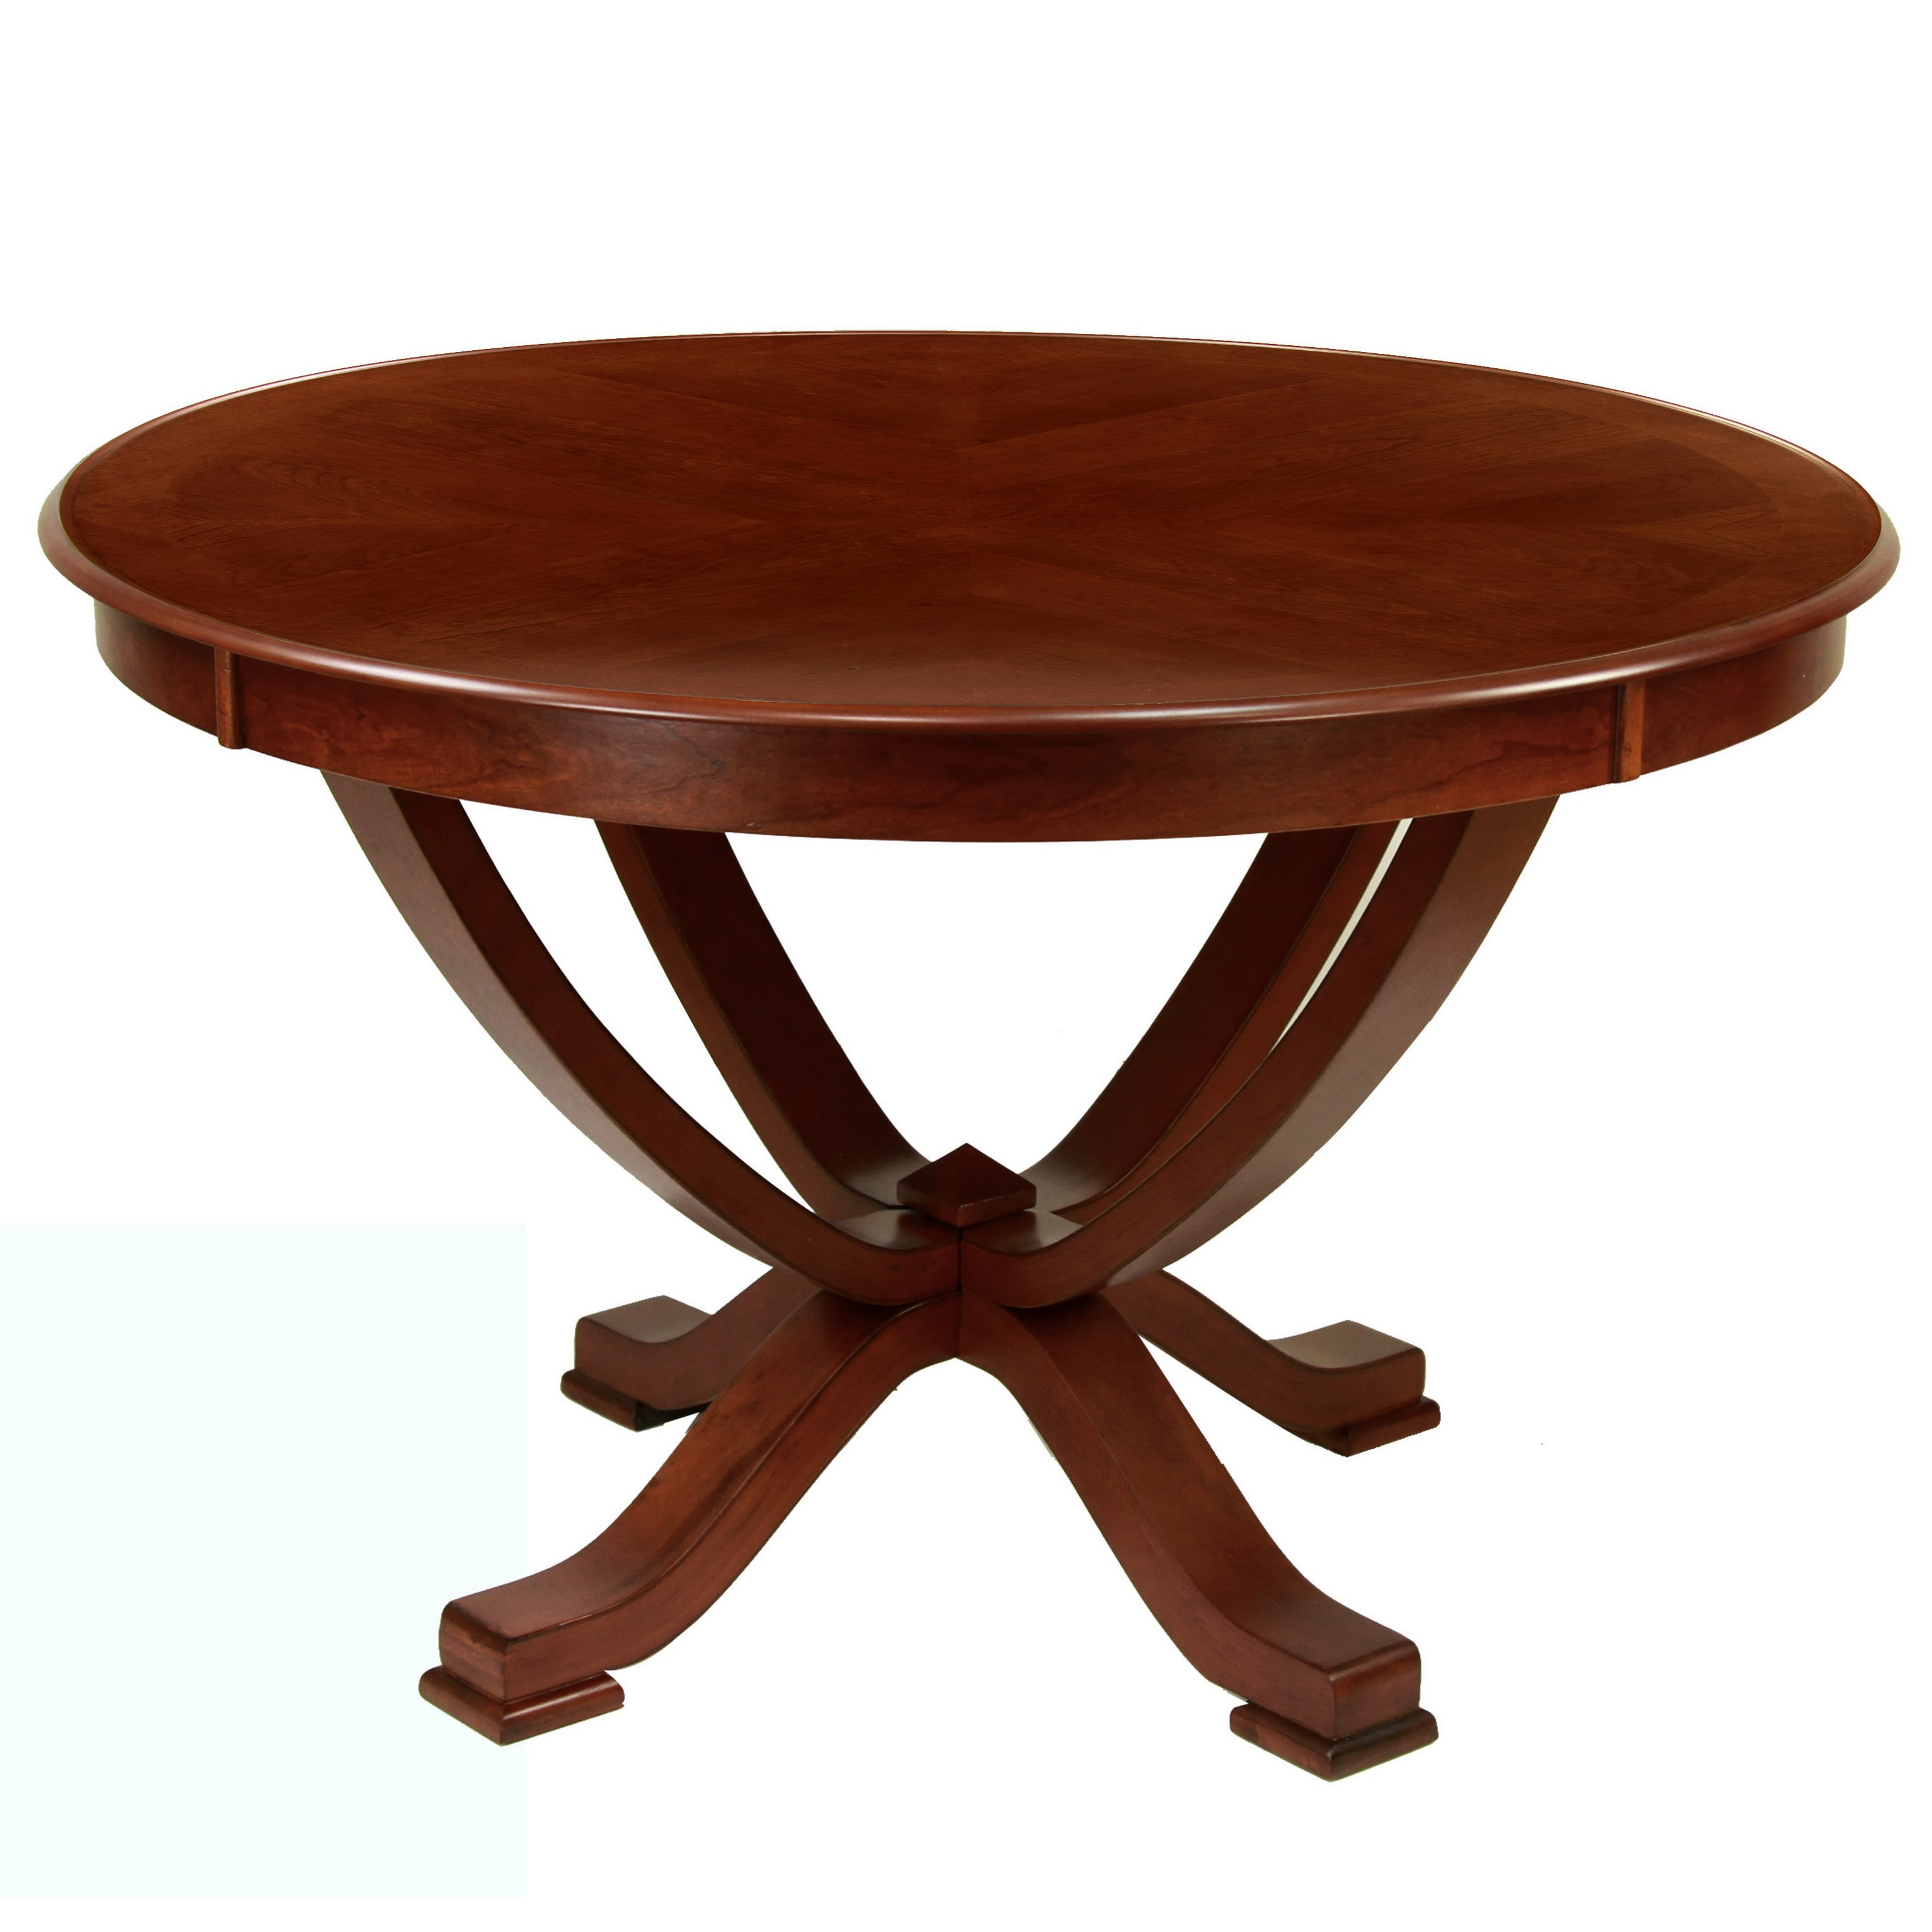 Furniture of America Primrose Brown Cherry Finish Round Dining Table by Overstock